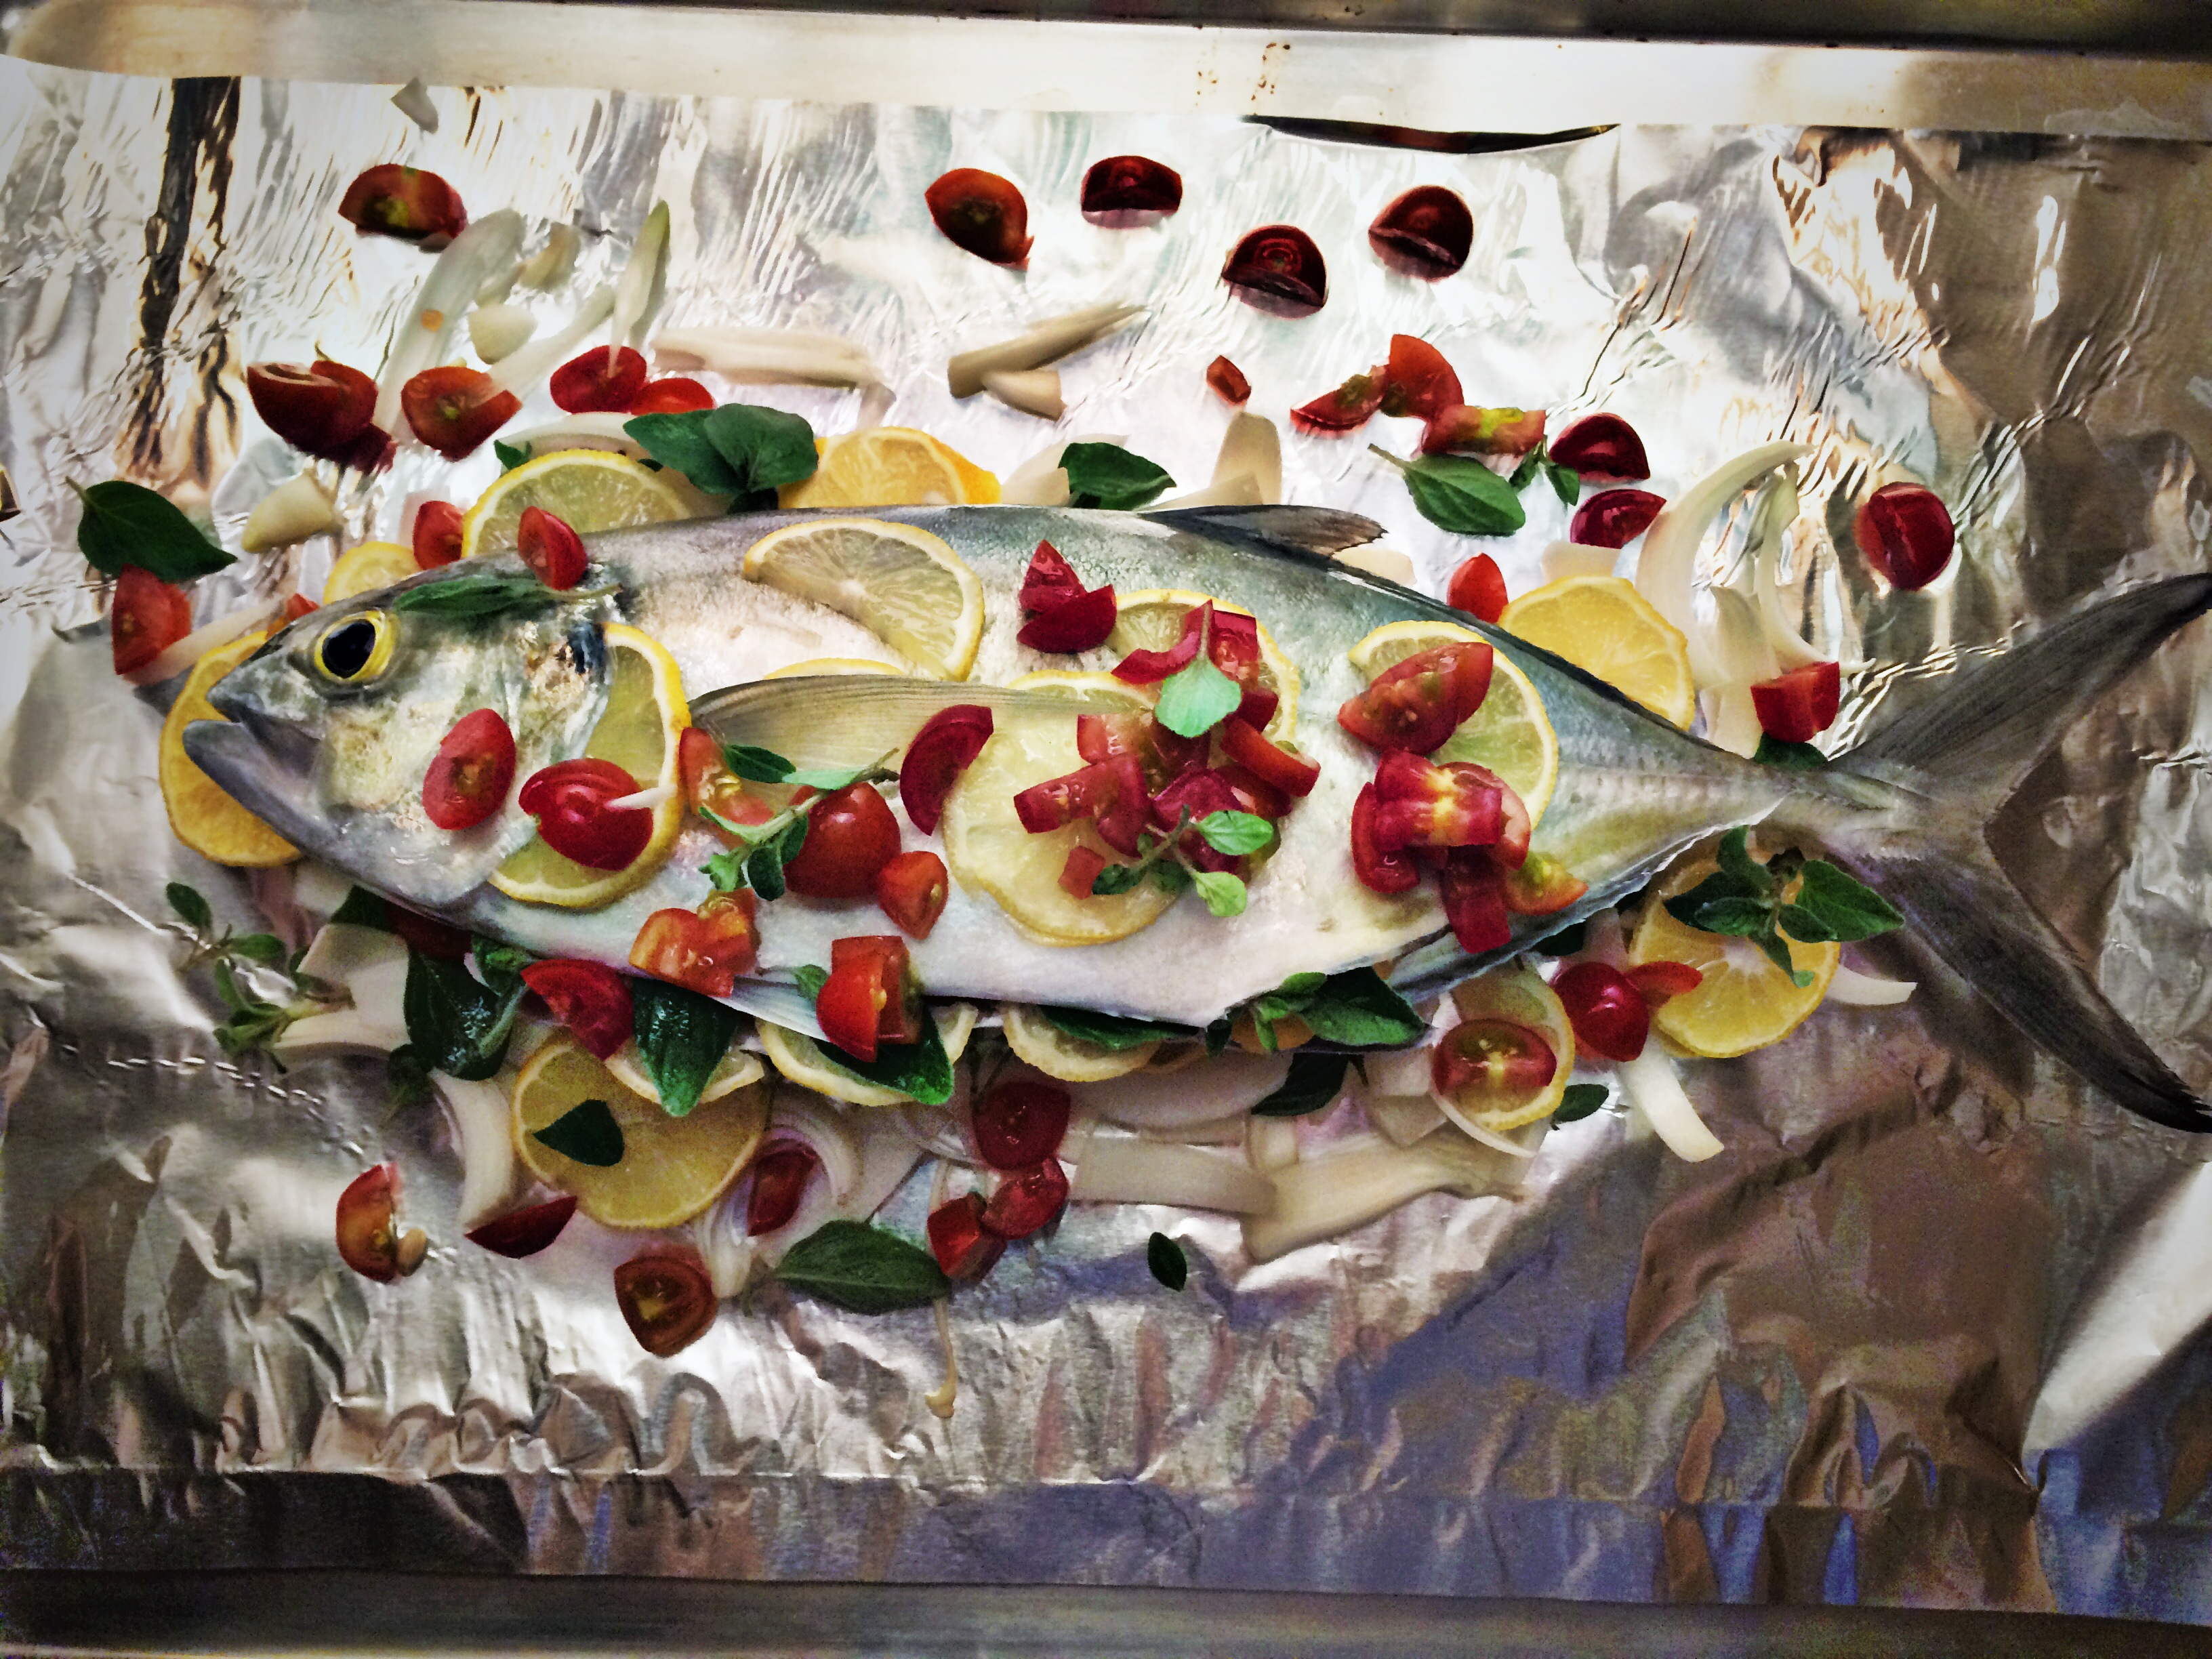 Whole amberfish ready to bake.